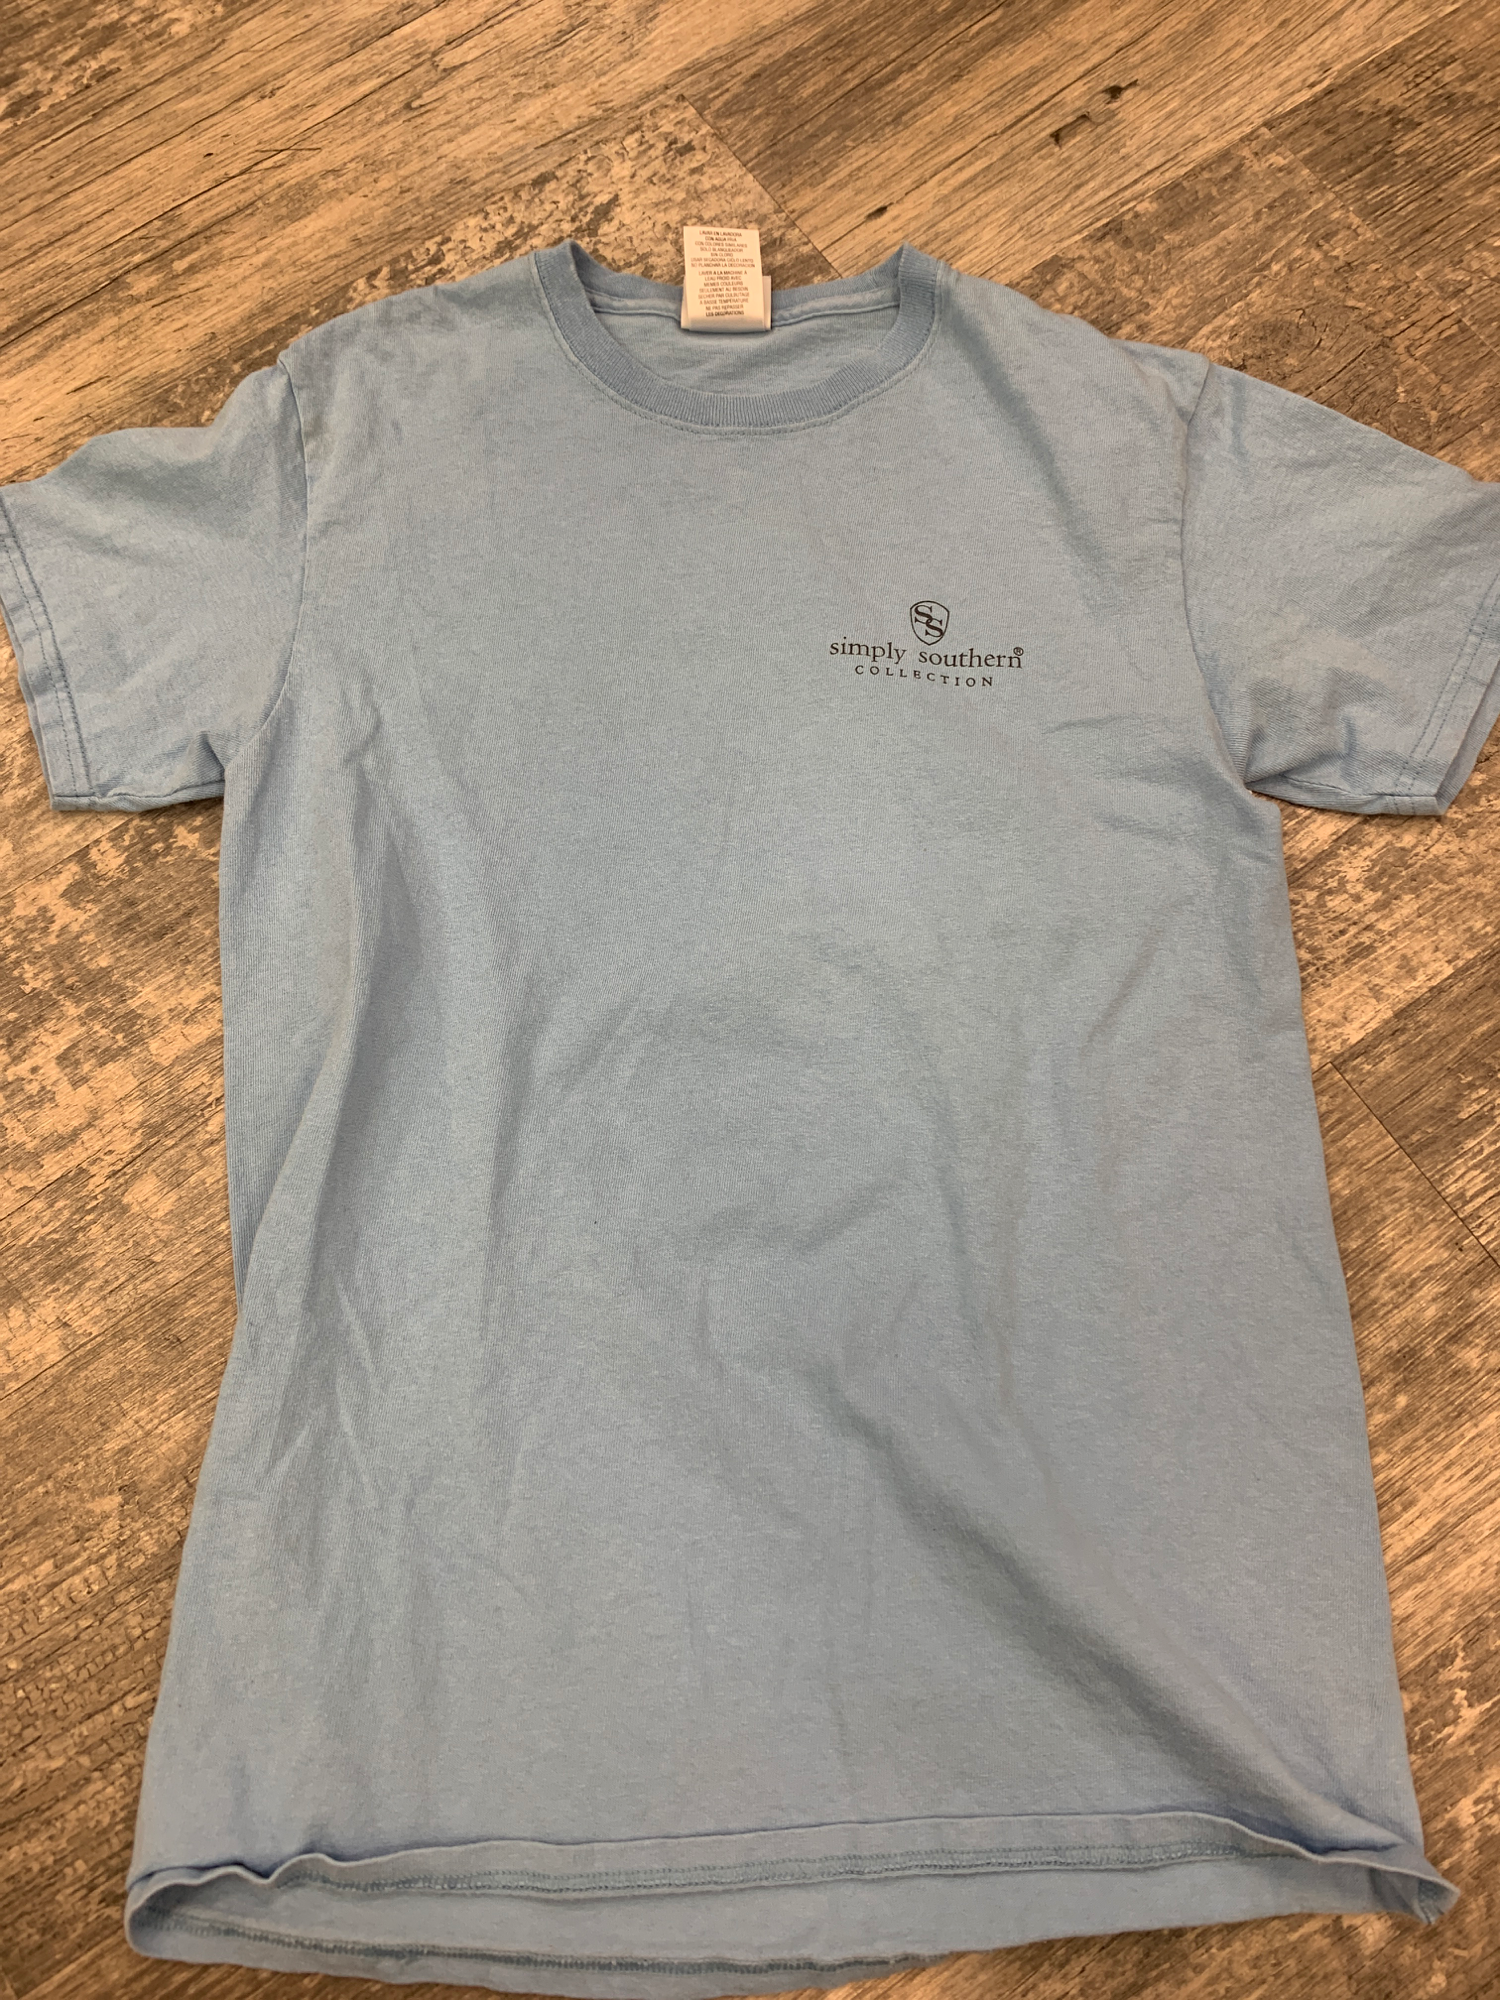 Simply Southern T-Shirt Size Small